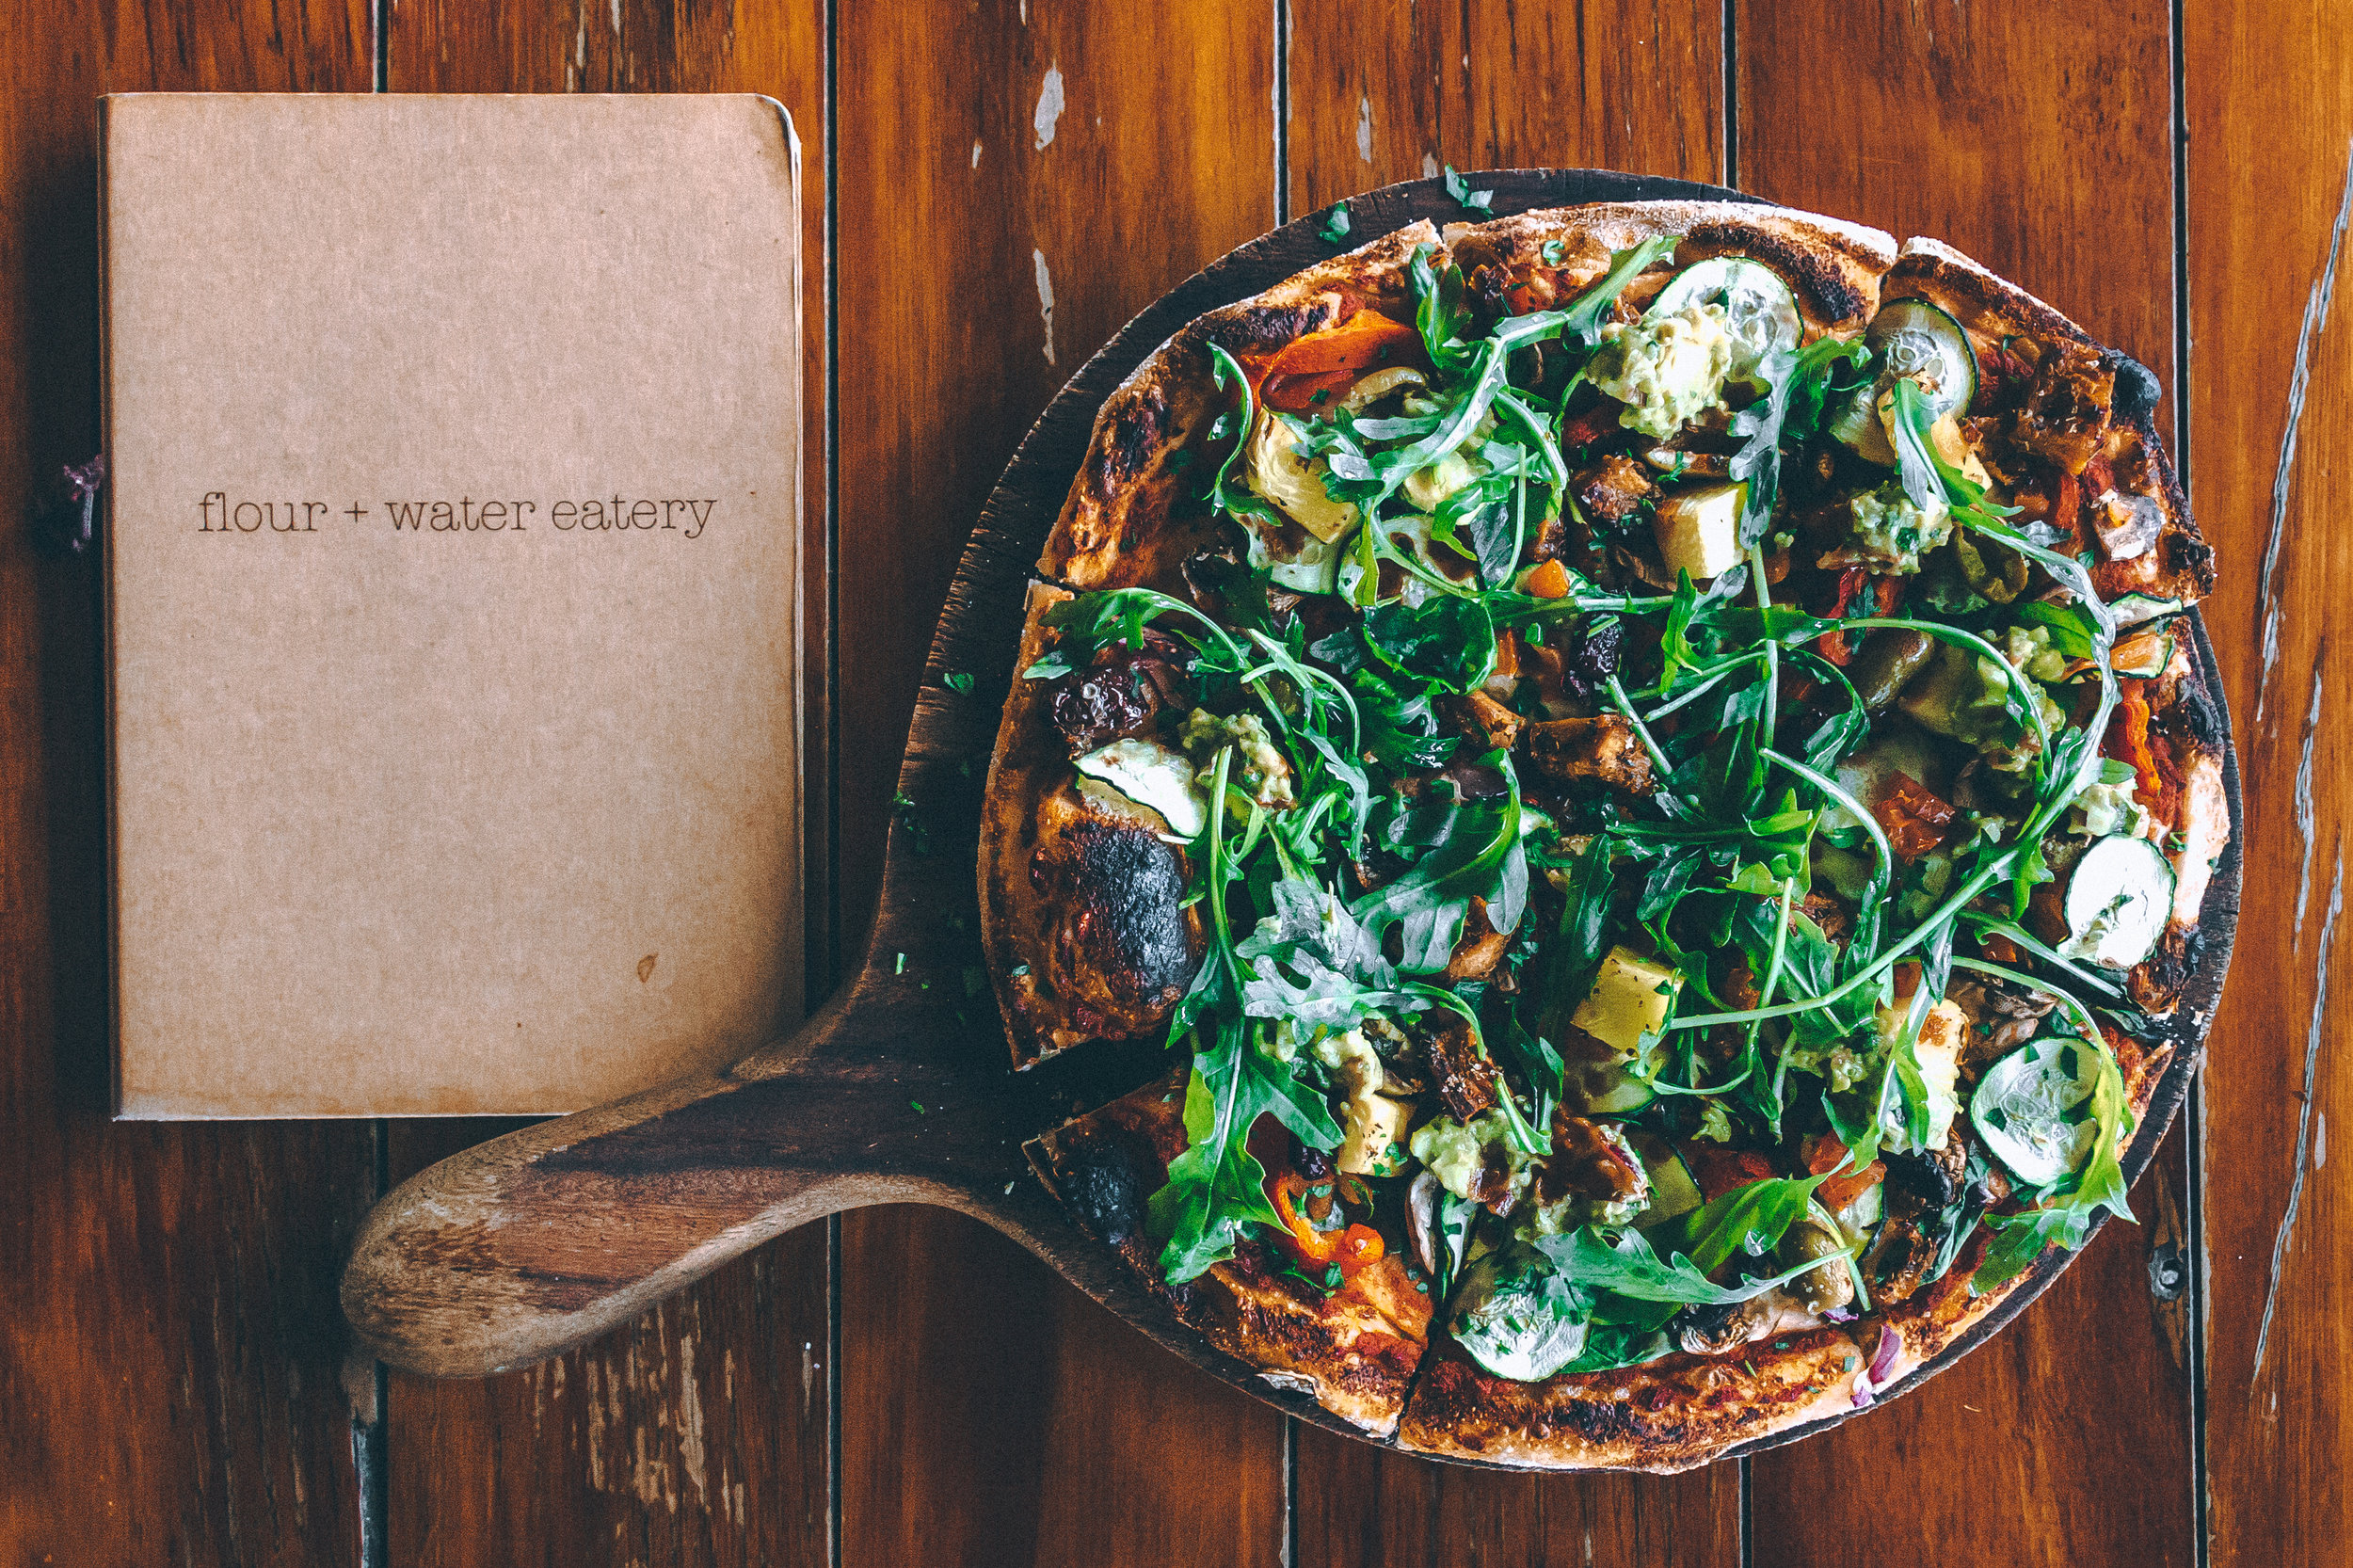 *Our Wood fired Vegan Pizza